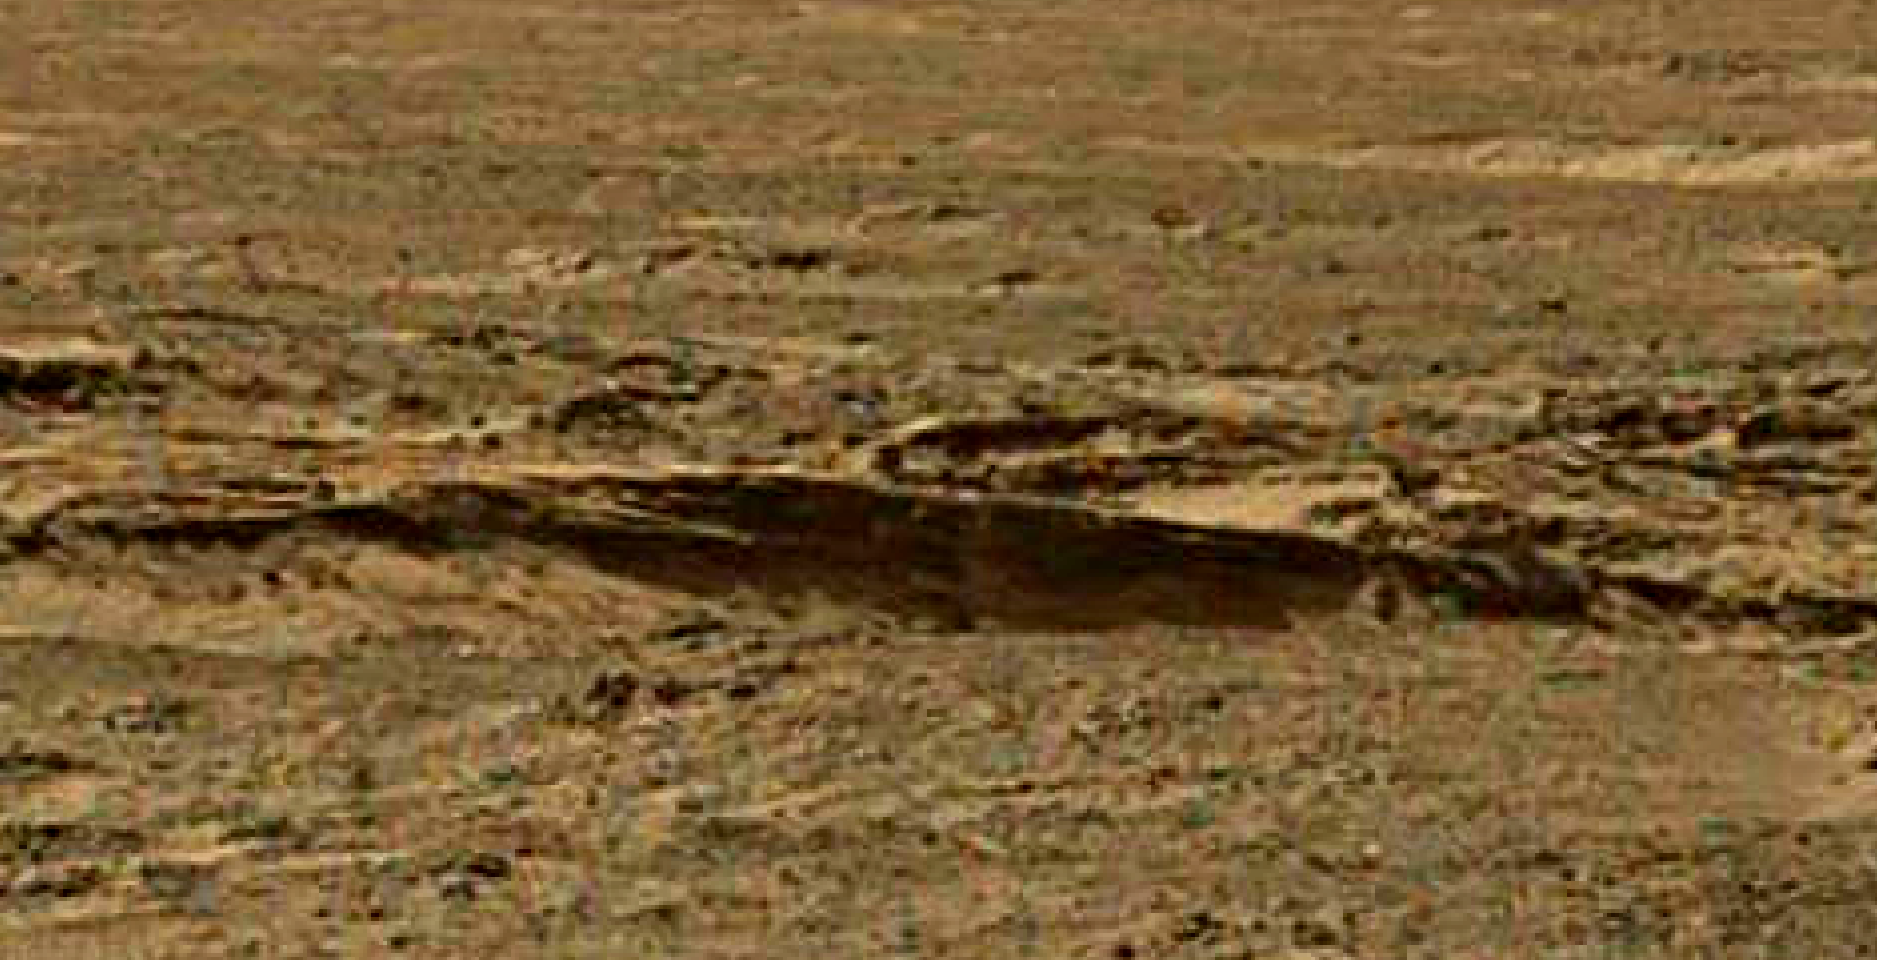 mars sol 1344 anomaly-artifacts 13 was life on mars